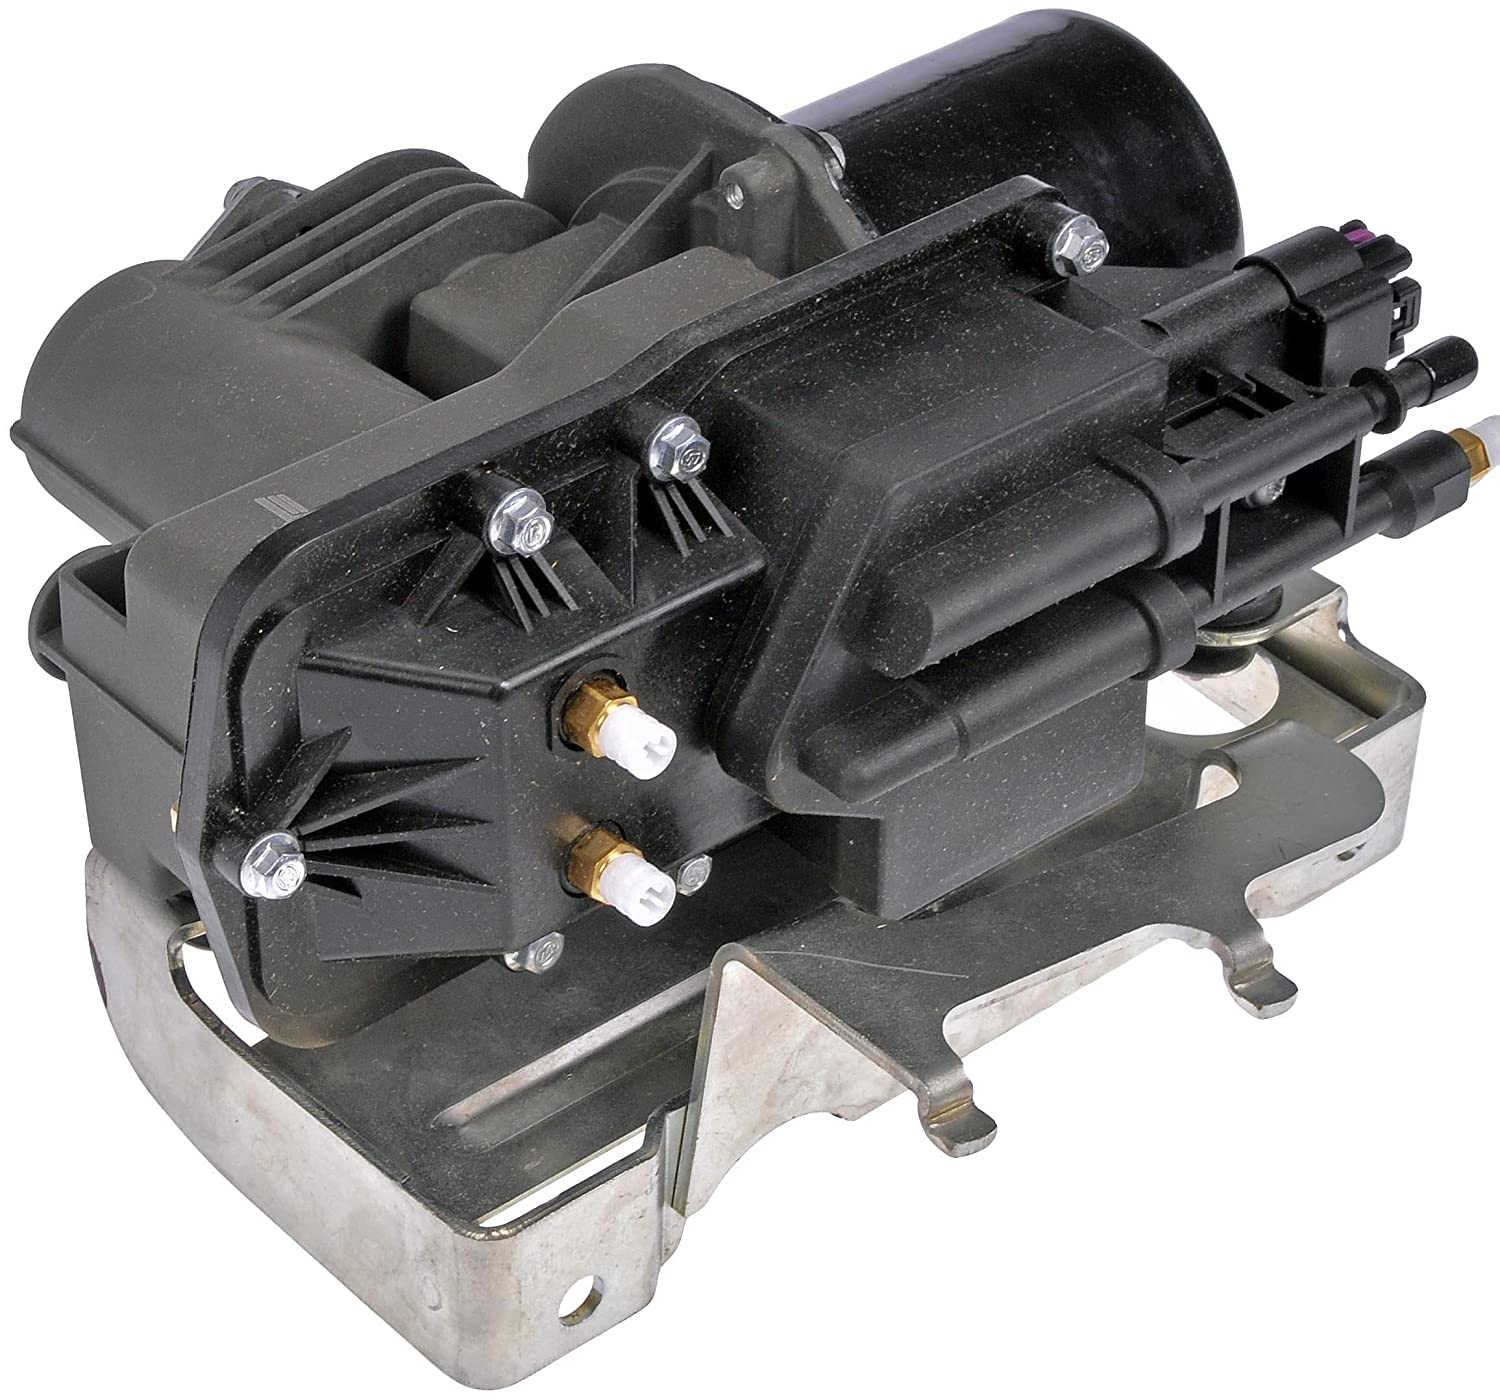 Dorman 949-002 Air Suspension Compressor for Select Models on